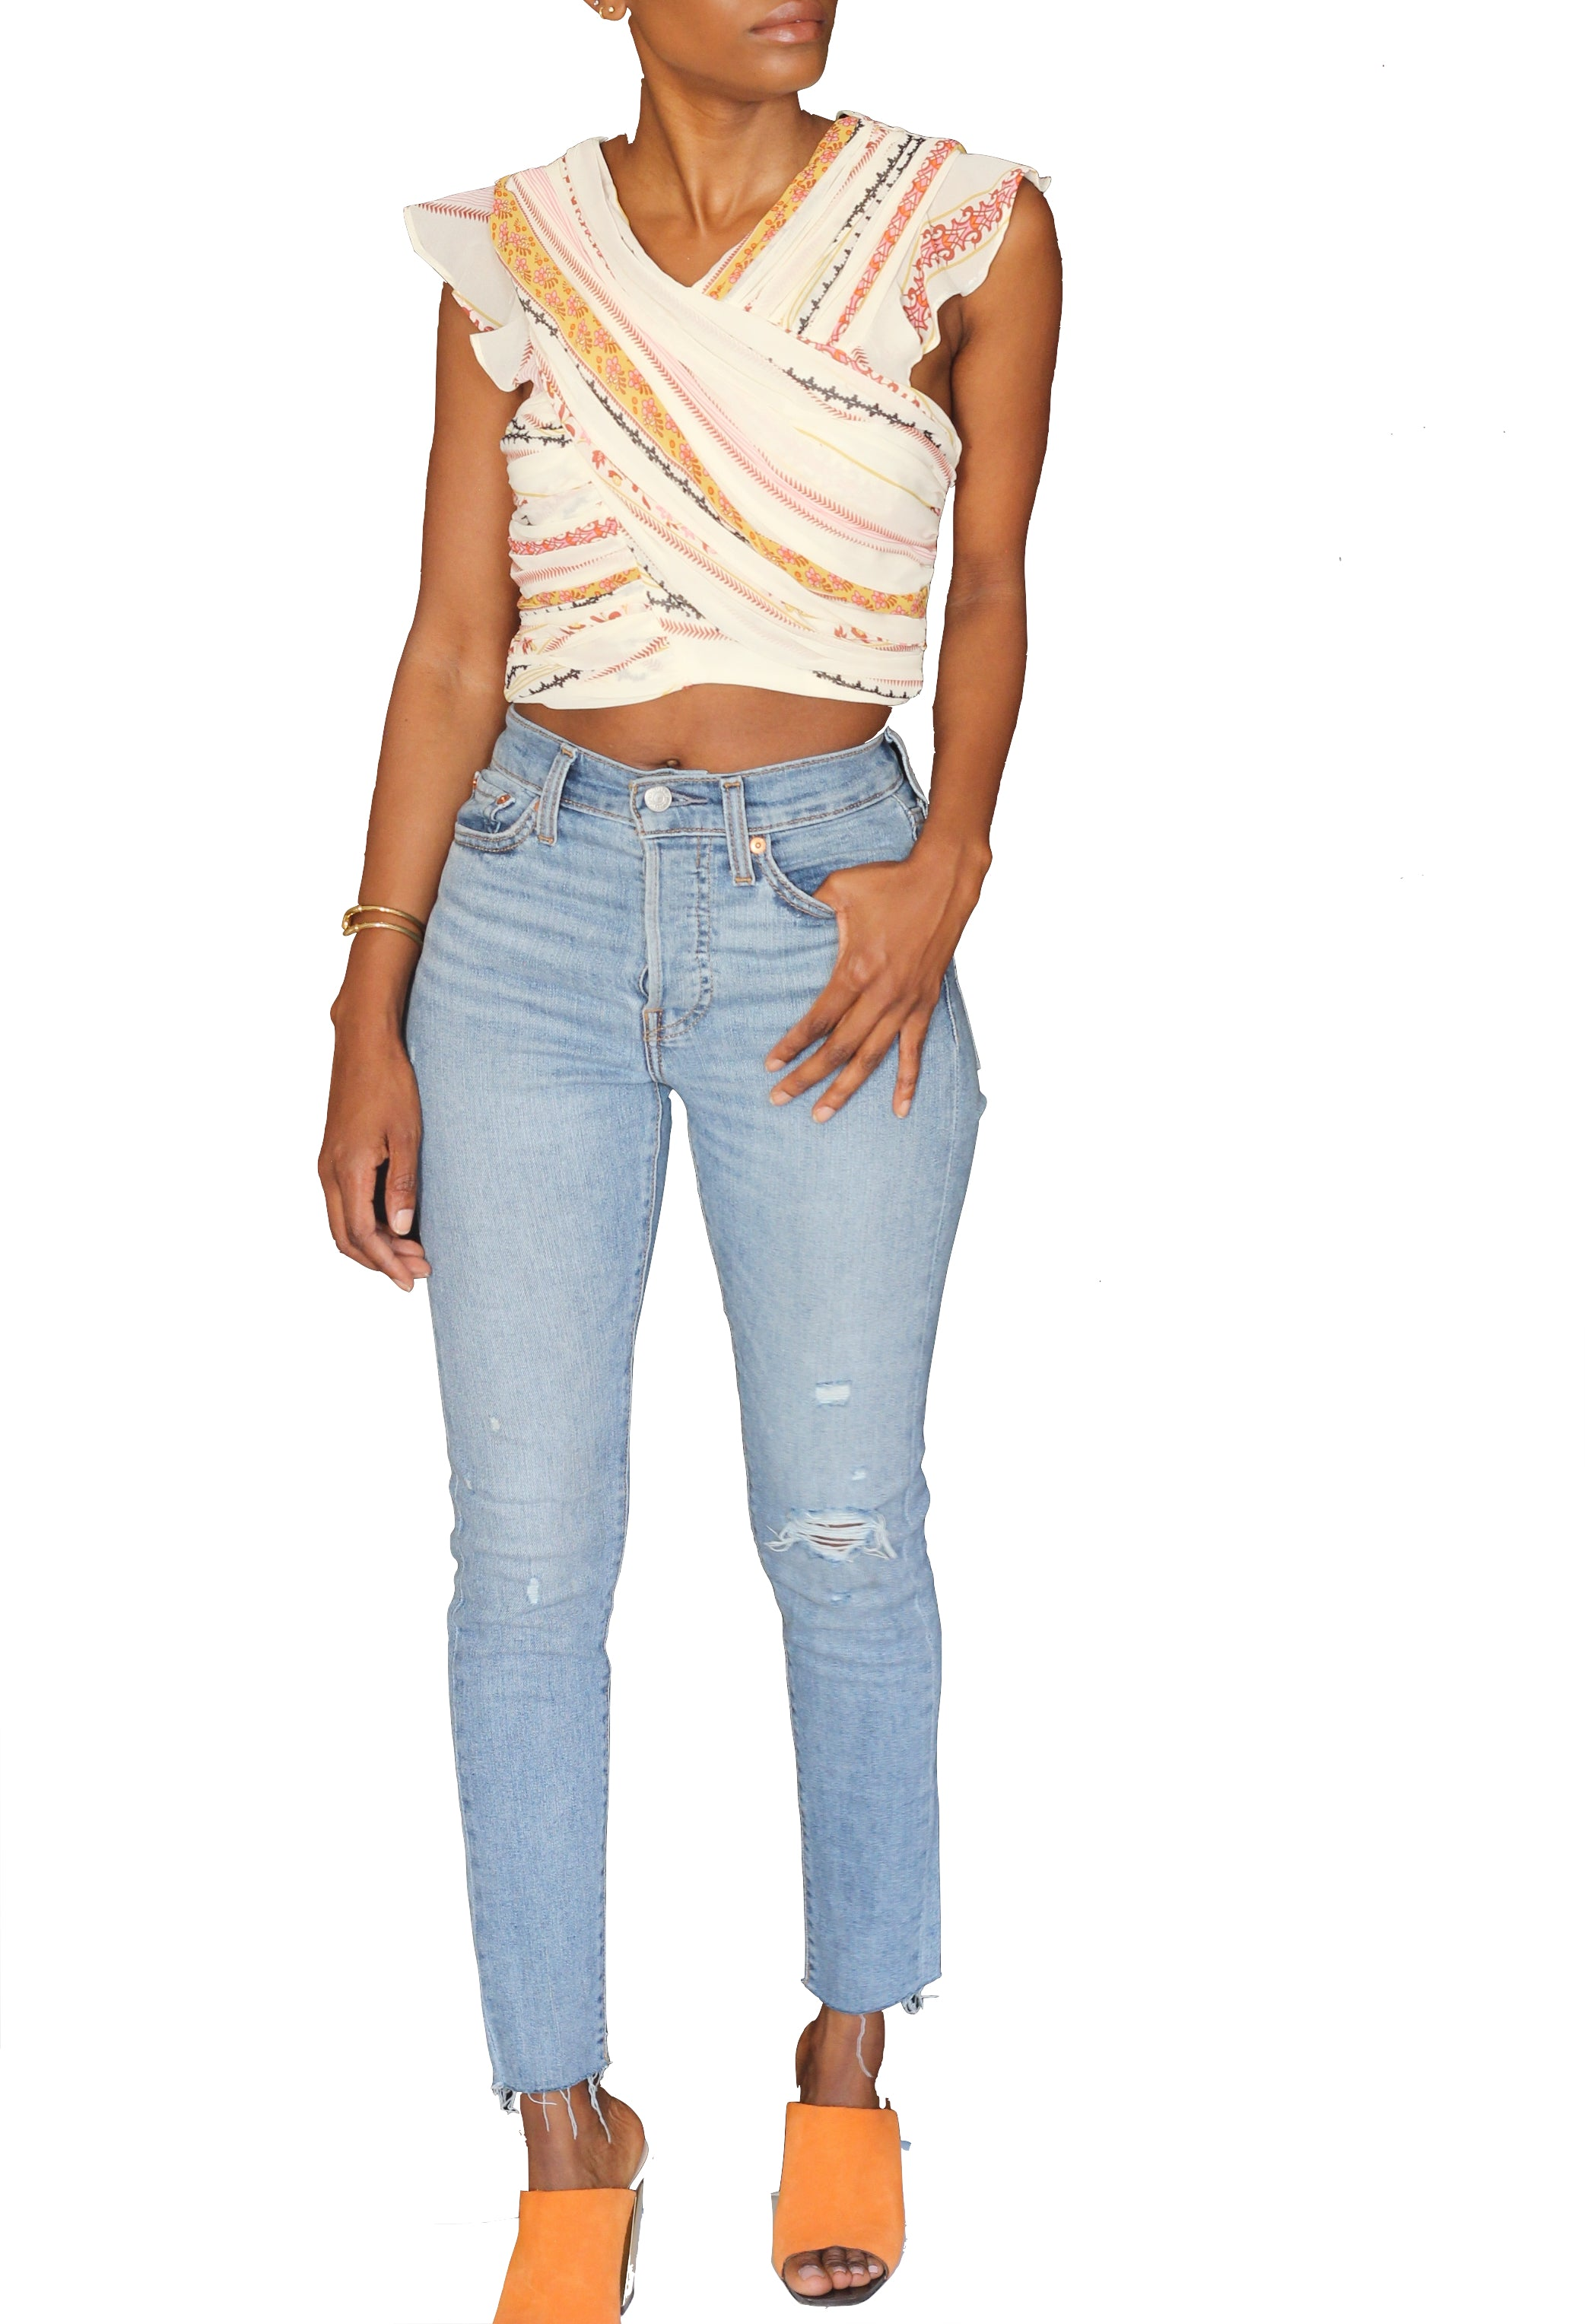 Bethany Printed Crop Top - Cultur'd Collective